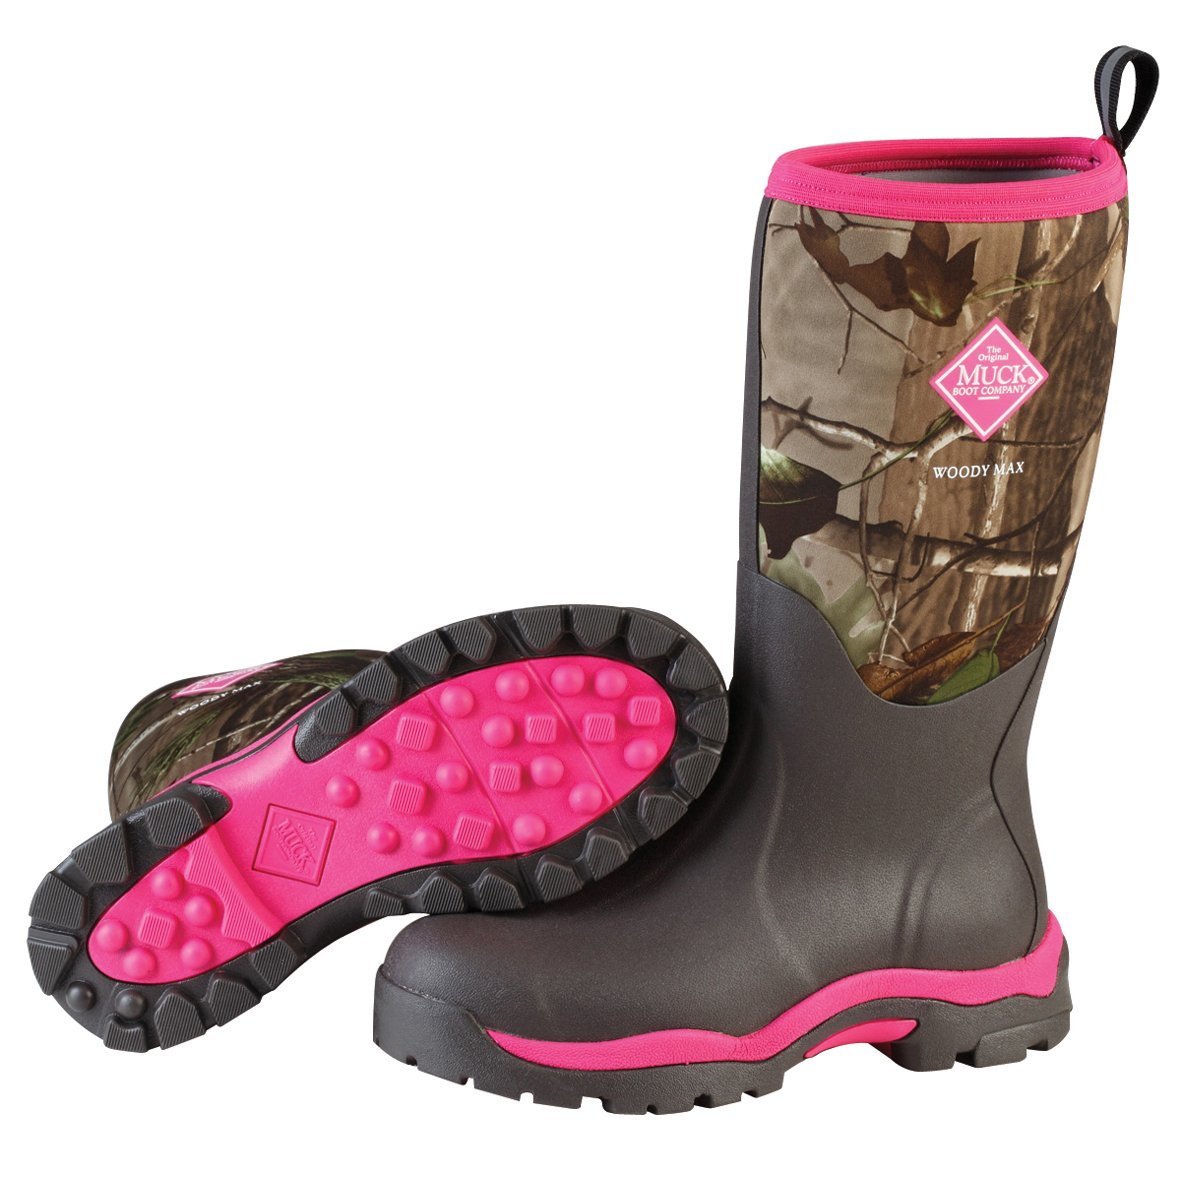 Muck Boot Womens Woody Pk Hunting Shoes, Bark/Realtree/Hot Pink, 8 US/8-8.5 M US by Muck Boot